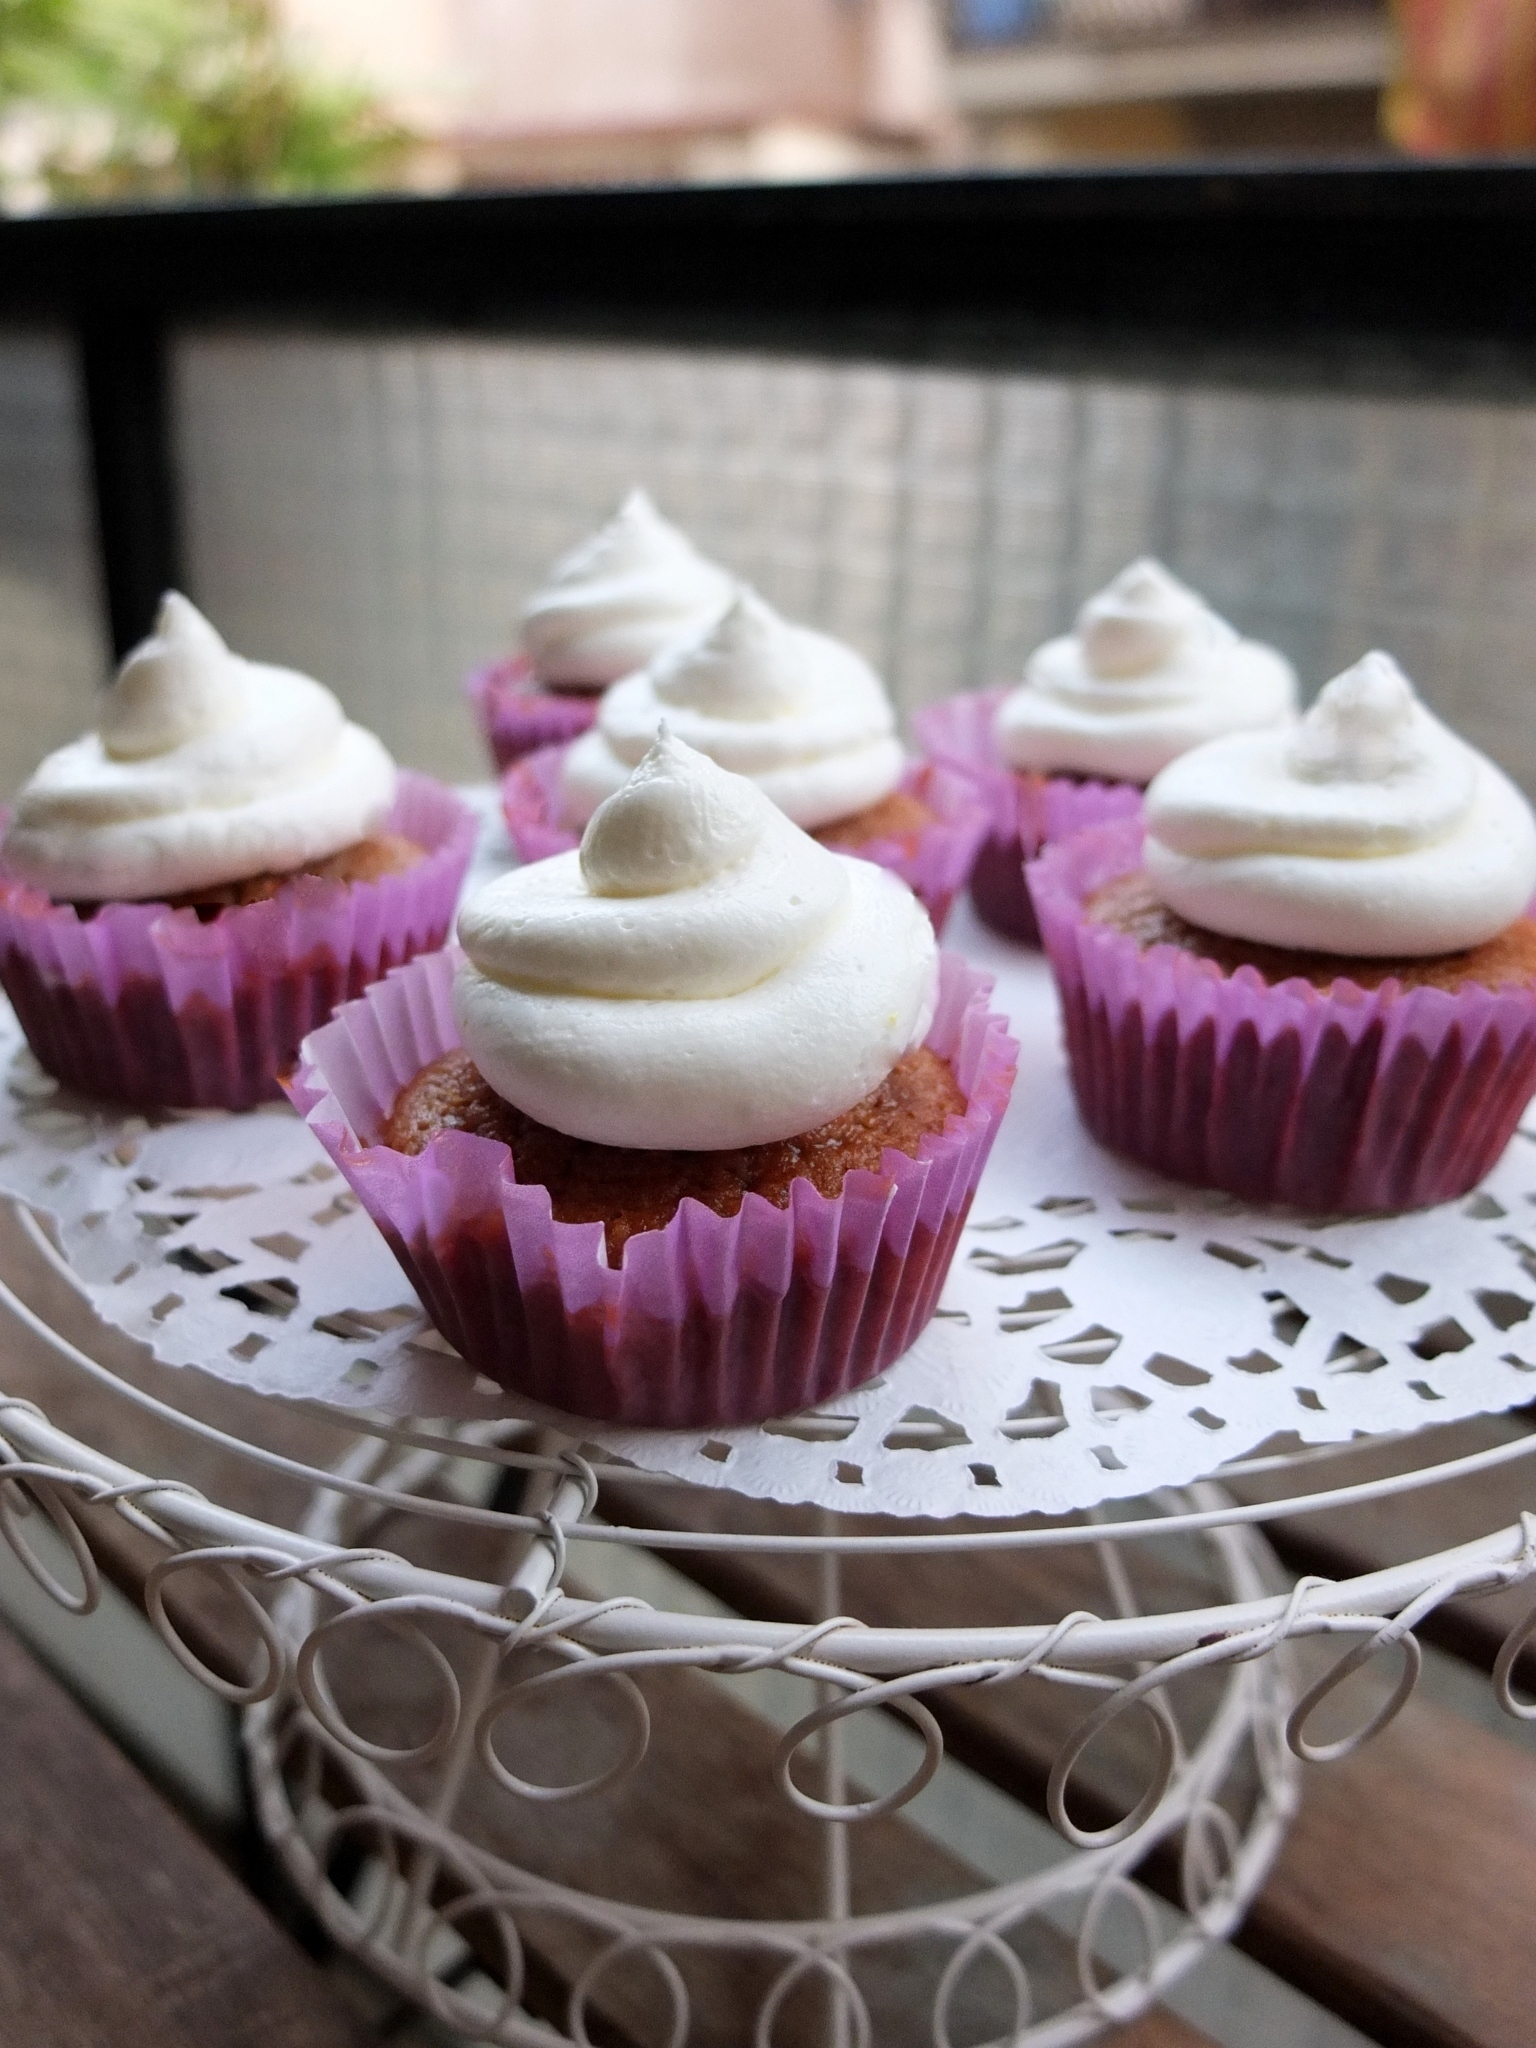 Jamaican ginger cupcakes recipe with lemon swiss meringue buttercream ...